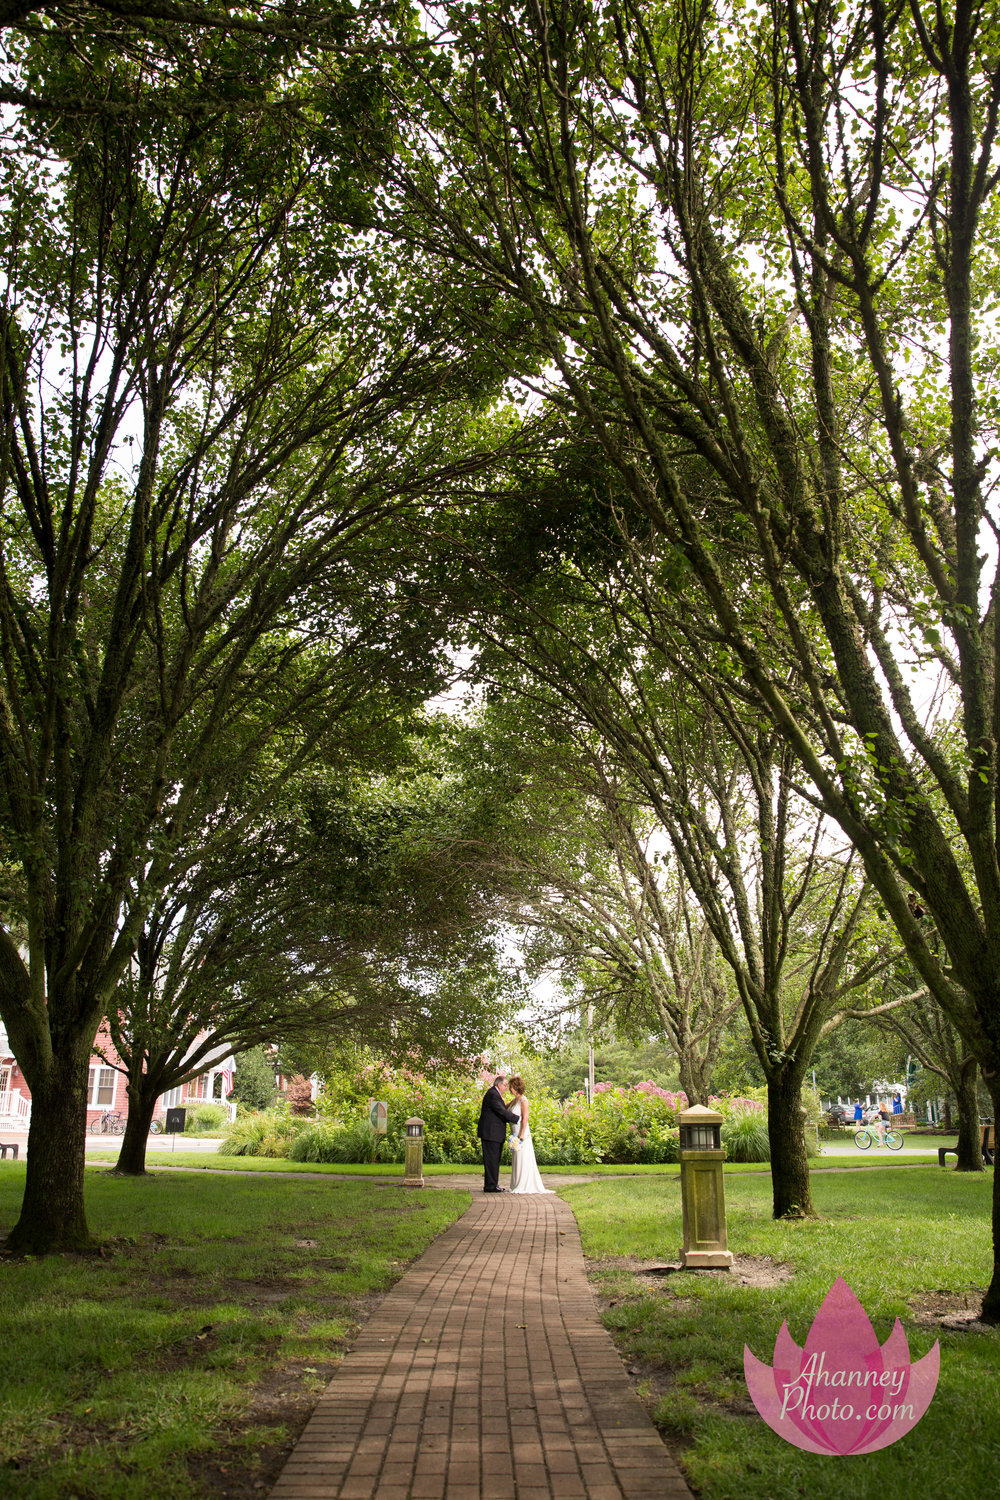 Bride and Groom on Tree Covered Path Wedding Photography of Groom and Bride Doorway ChurchThe Grand Hotel Cape May New Jersey Anastasia Hanney Photography AHanneyPhoto